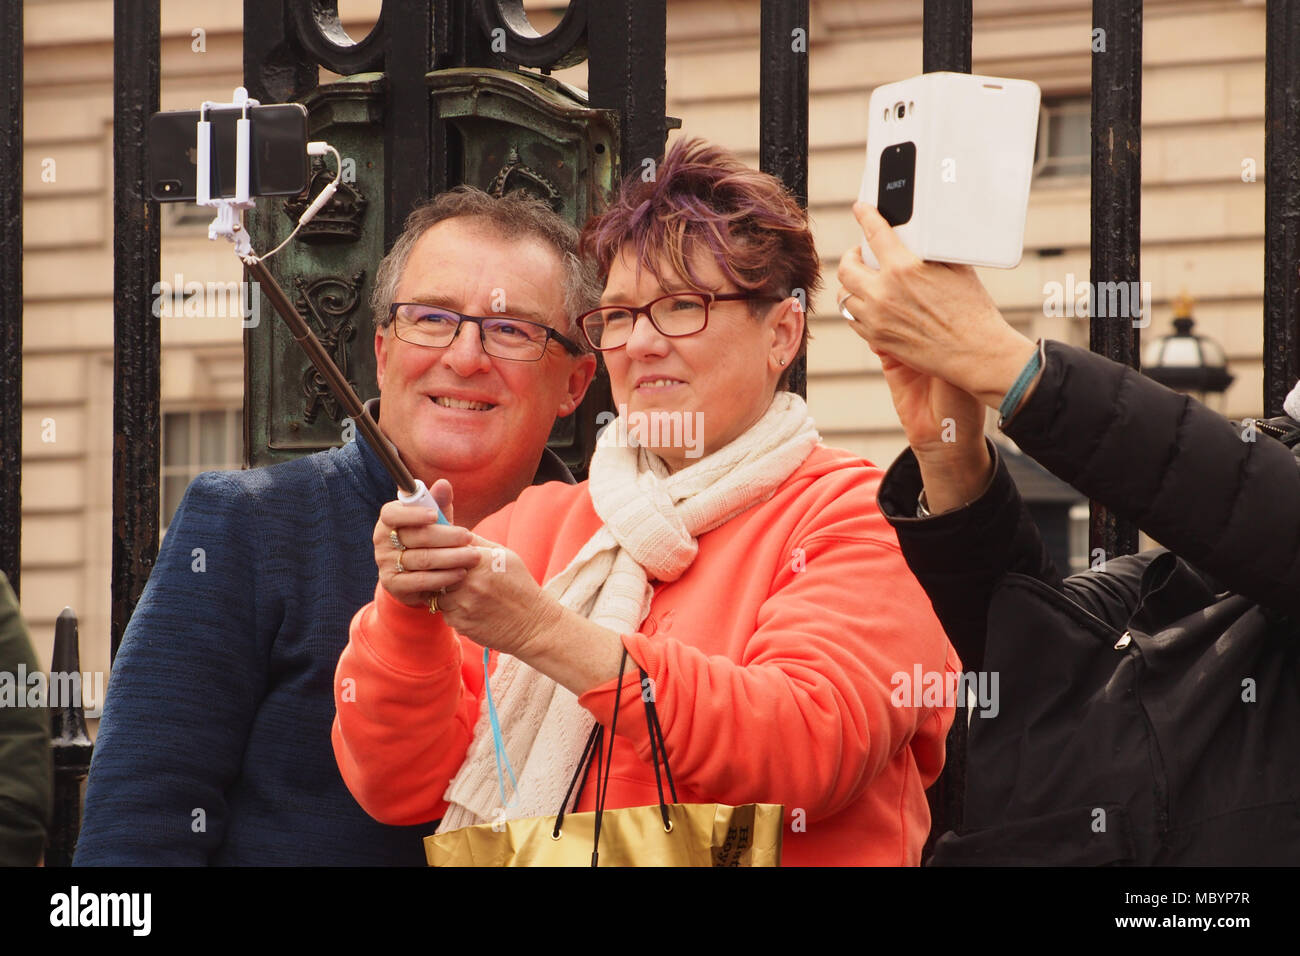 A middle aged couple, smiling, taking a selfie outside the front railings of Buckingham Palace with another man's hands taking another selfie - Stock Image